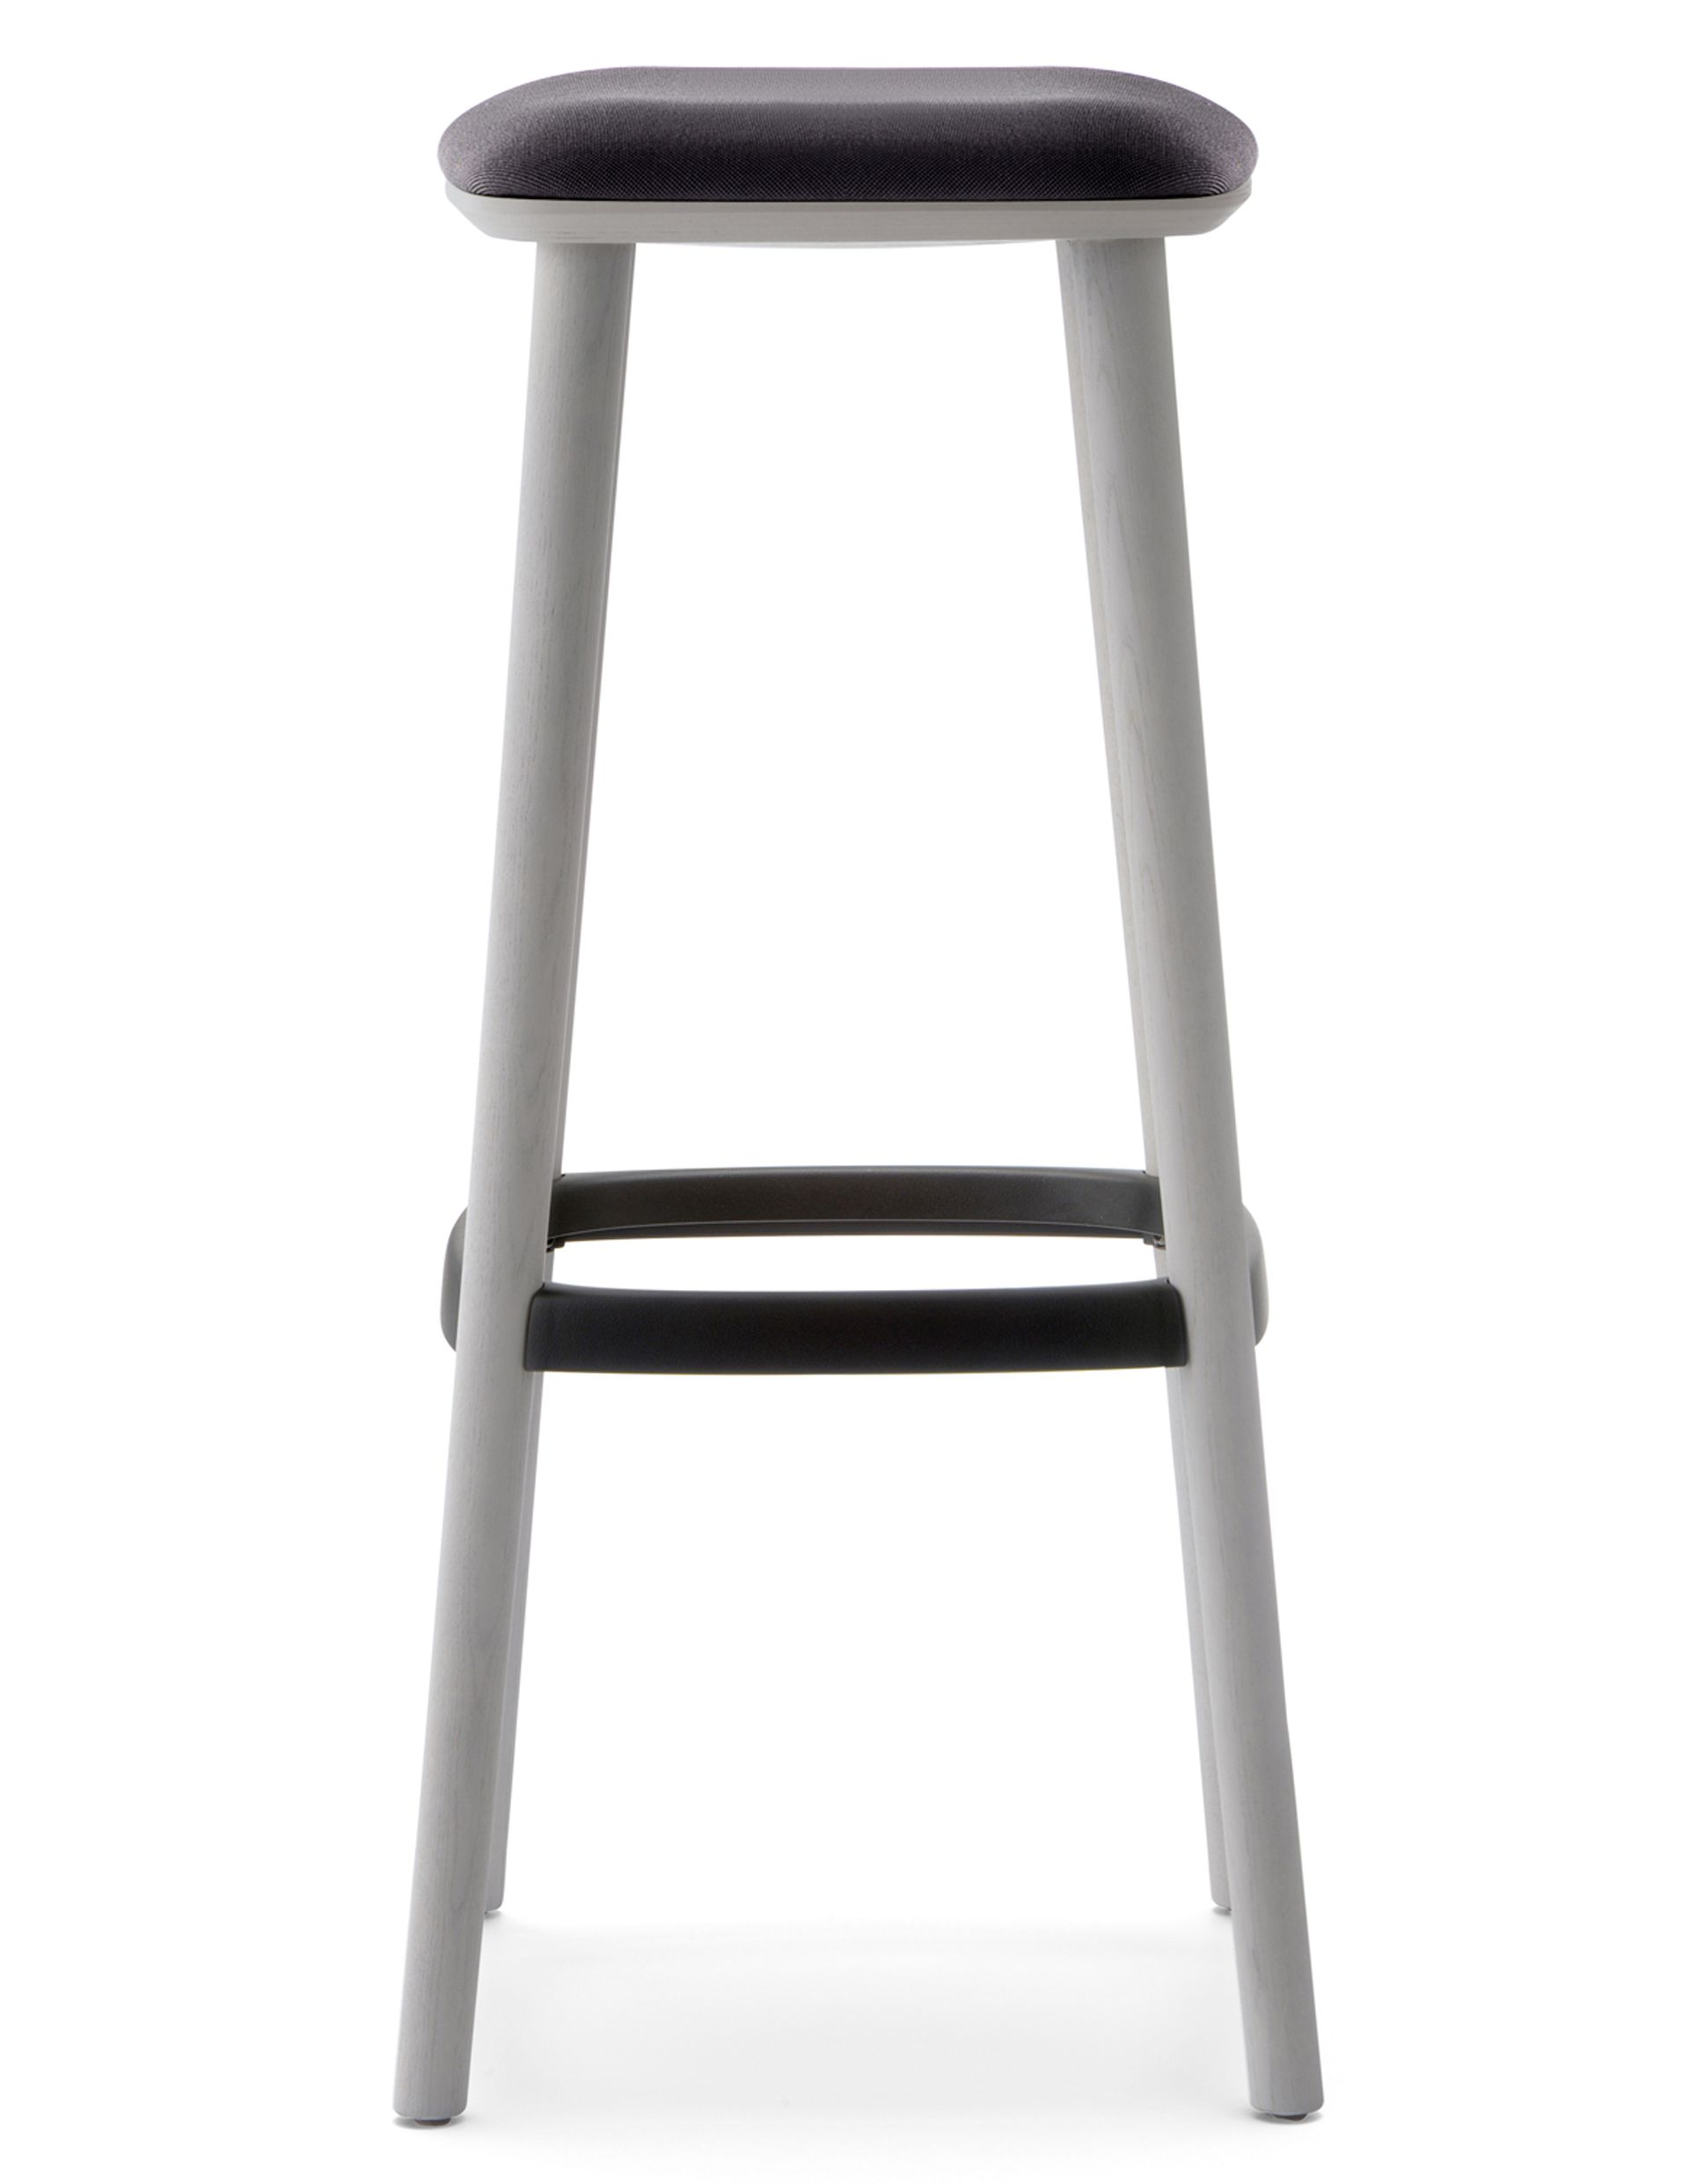 Ash Wood Barstool With An Extreme Lightweight Look Where The Die Casted Aluminium Footrest Is Perfectly Jointed To The Legs P Bar Stools Stool Wood Bar Stools